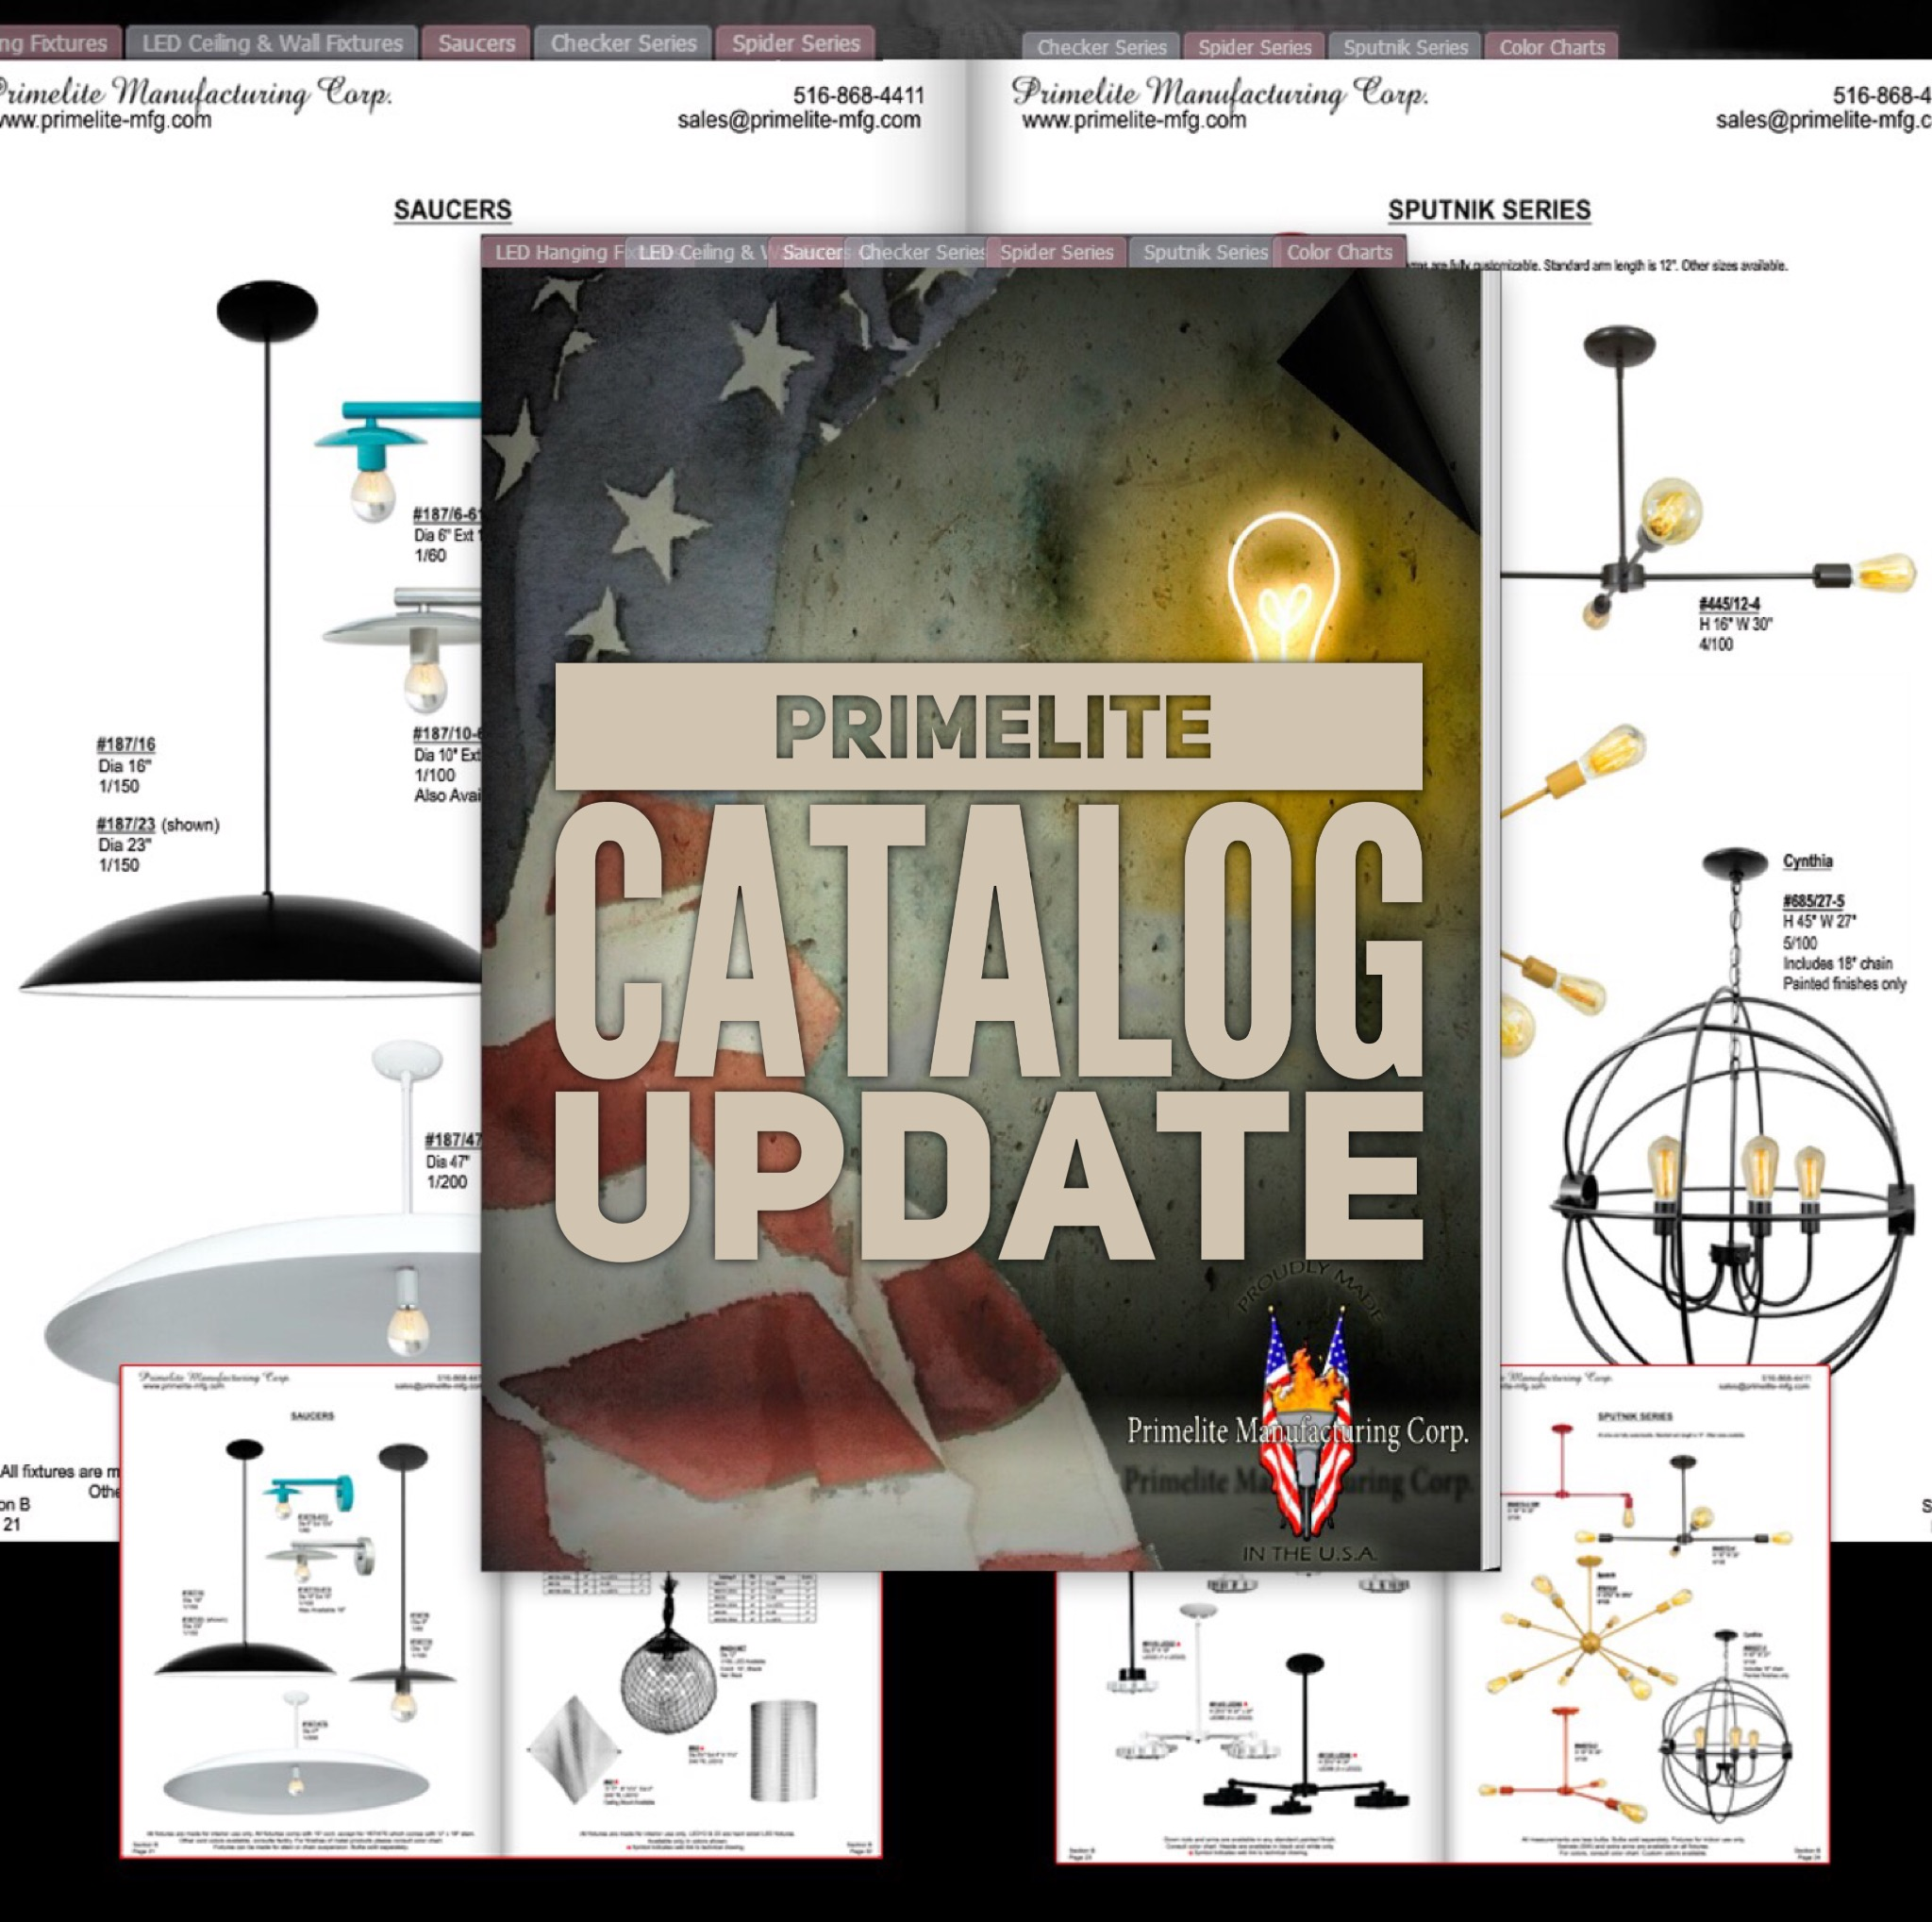 Primelite Mfg - Graphic promoting online catalog update